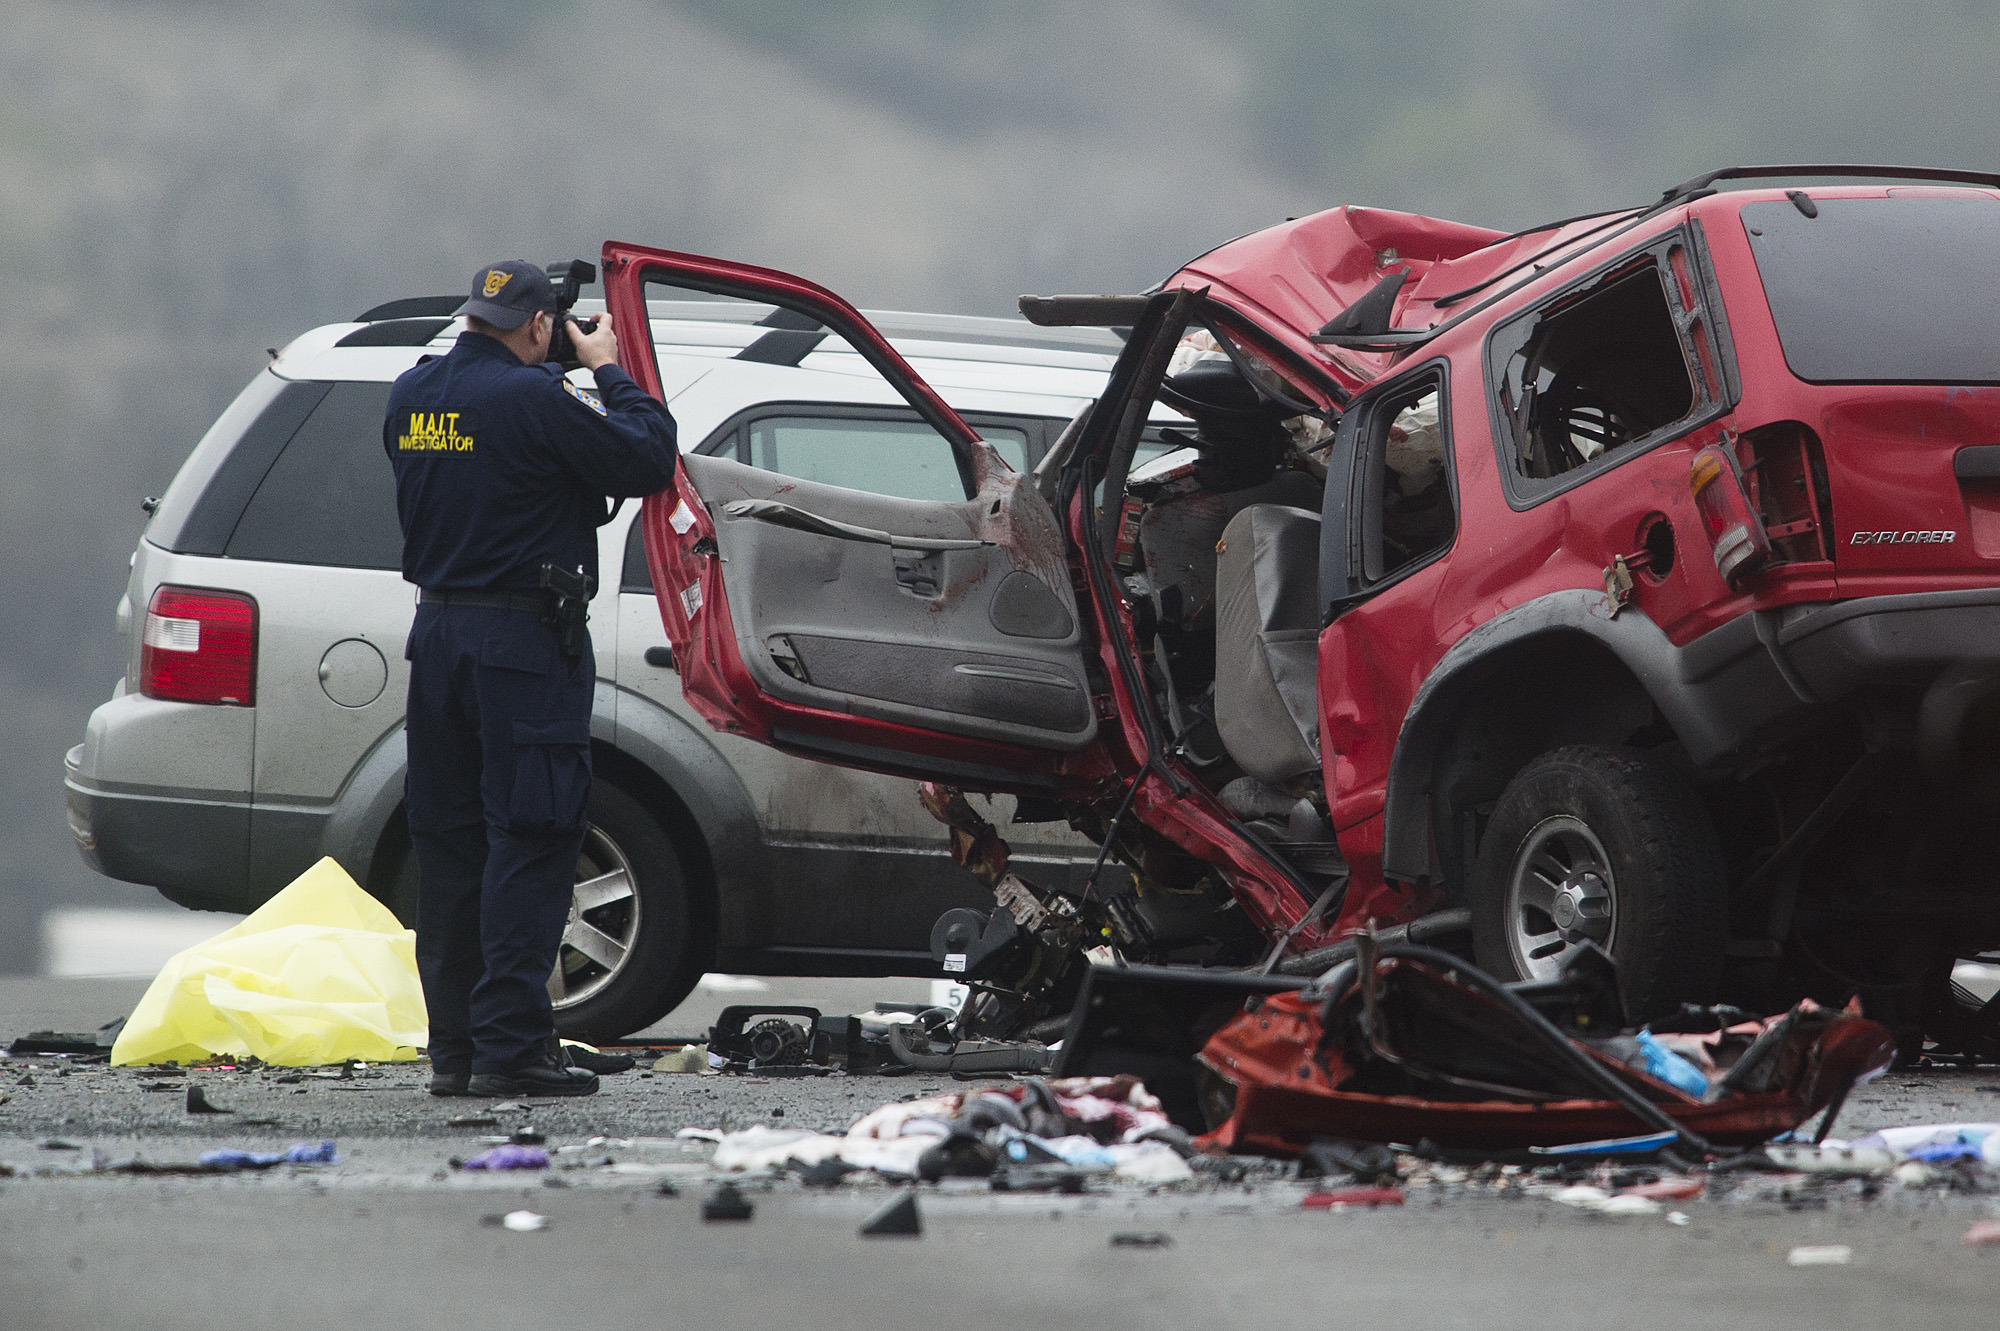 officials investigate the scene of a multiple vehicle accident where 6 people were killed on the